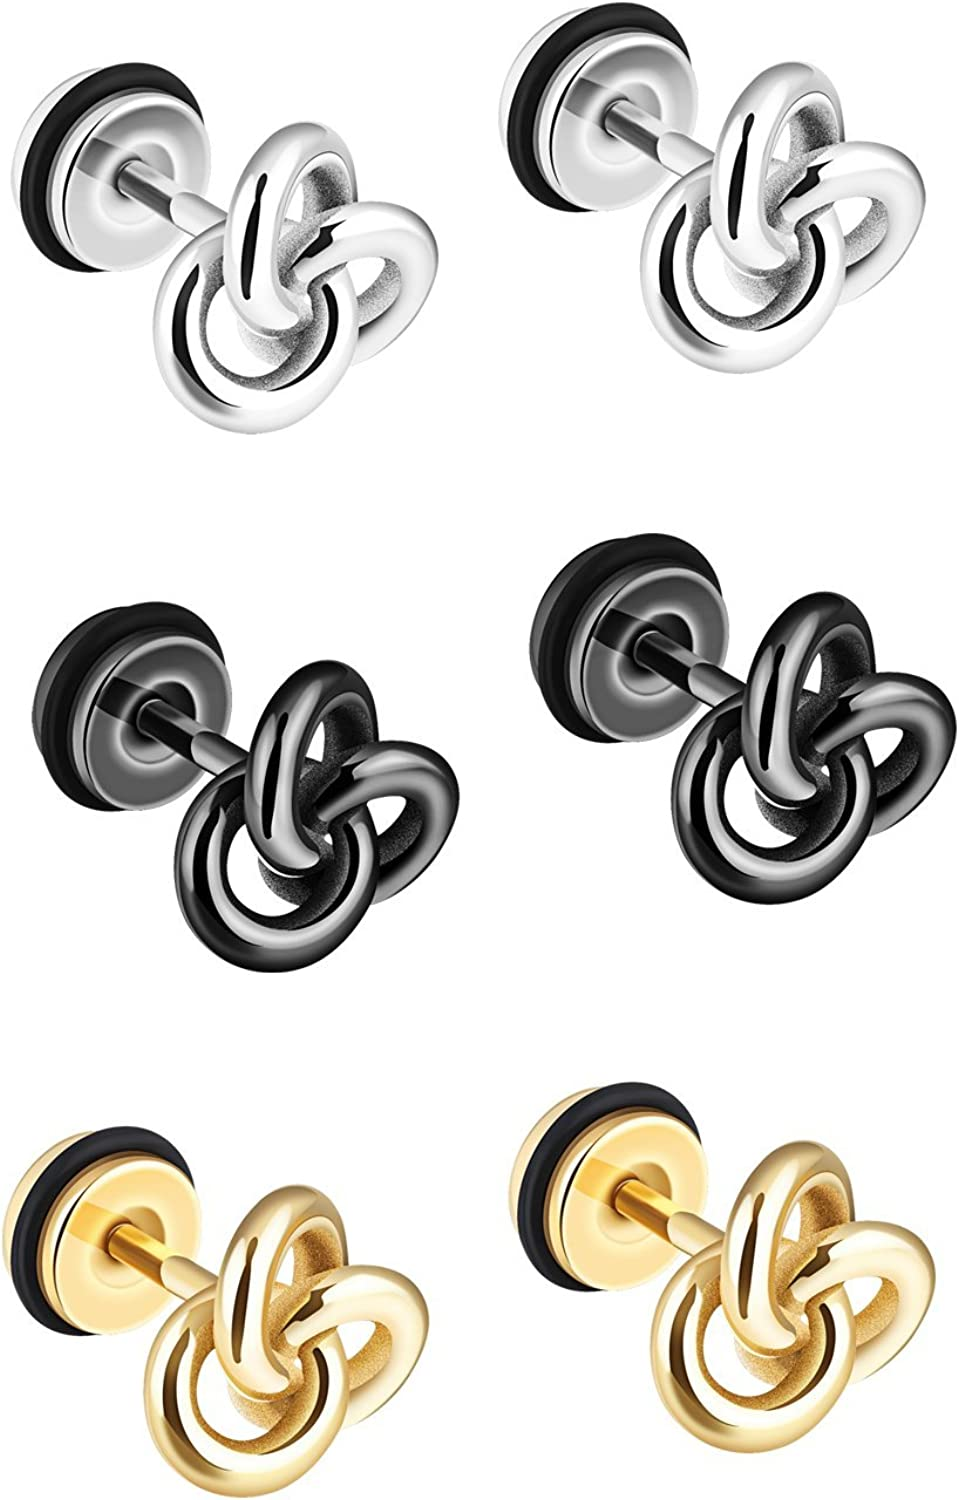 TEMICO 1-3 Pairs Silver Black Gold Tone Stainless Steel Twist Love Knot Post Stud Earrings For Men Women